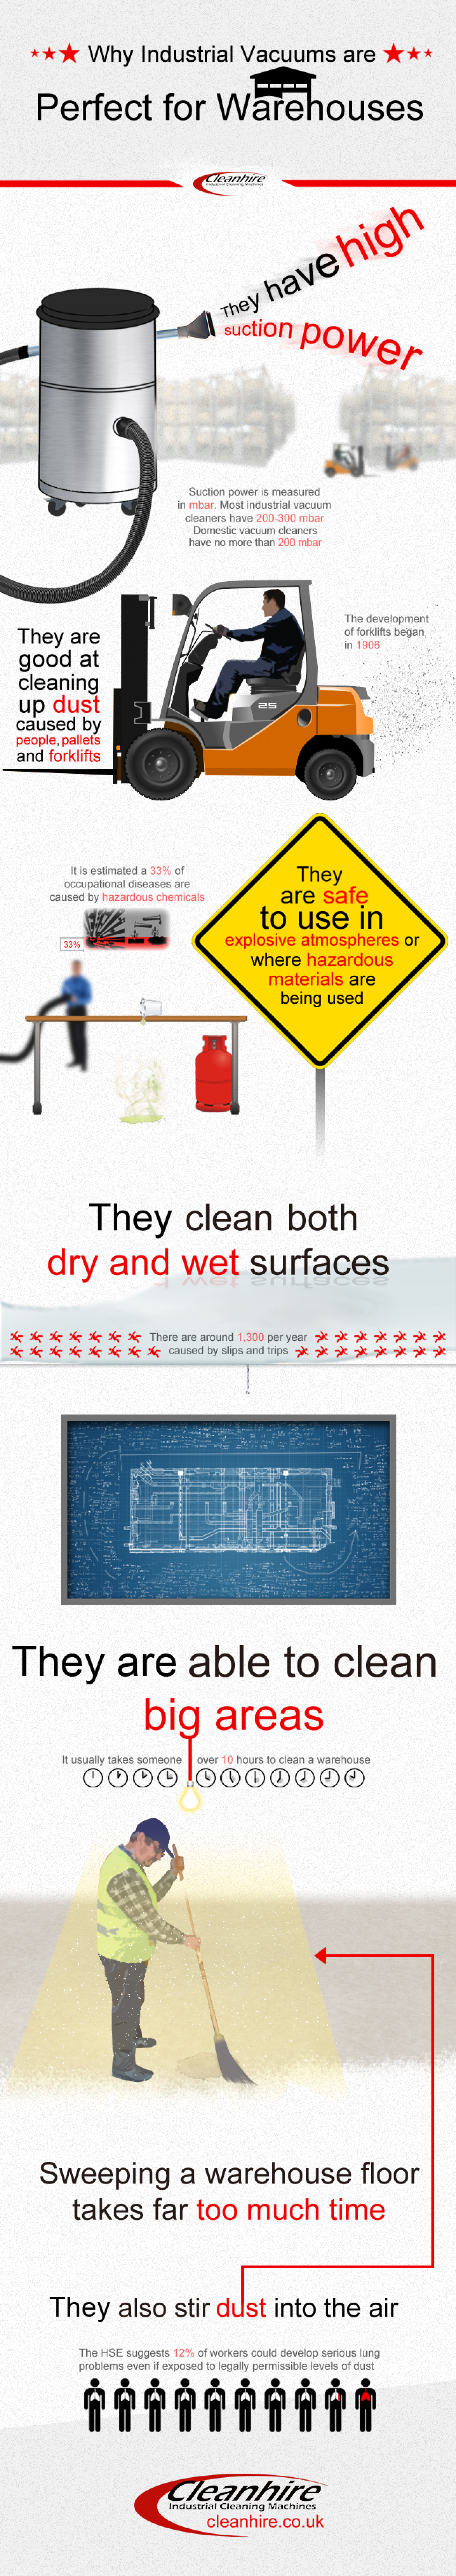 Why Industrial Vacuums are Perfect for Warehouses Infographic